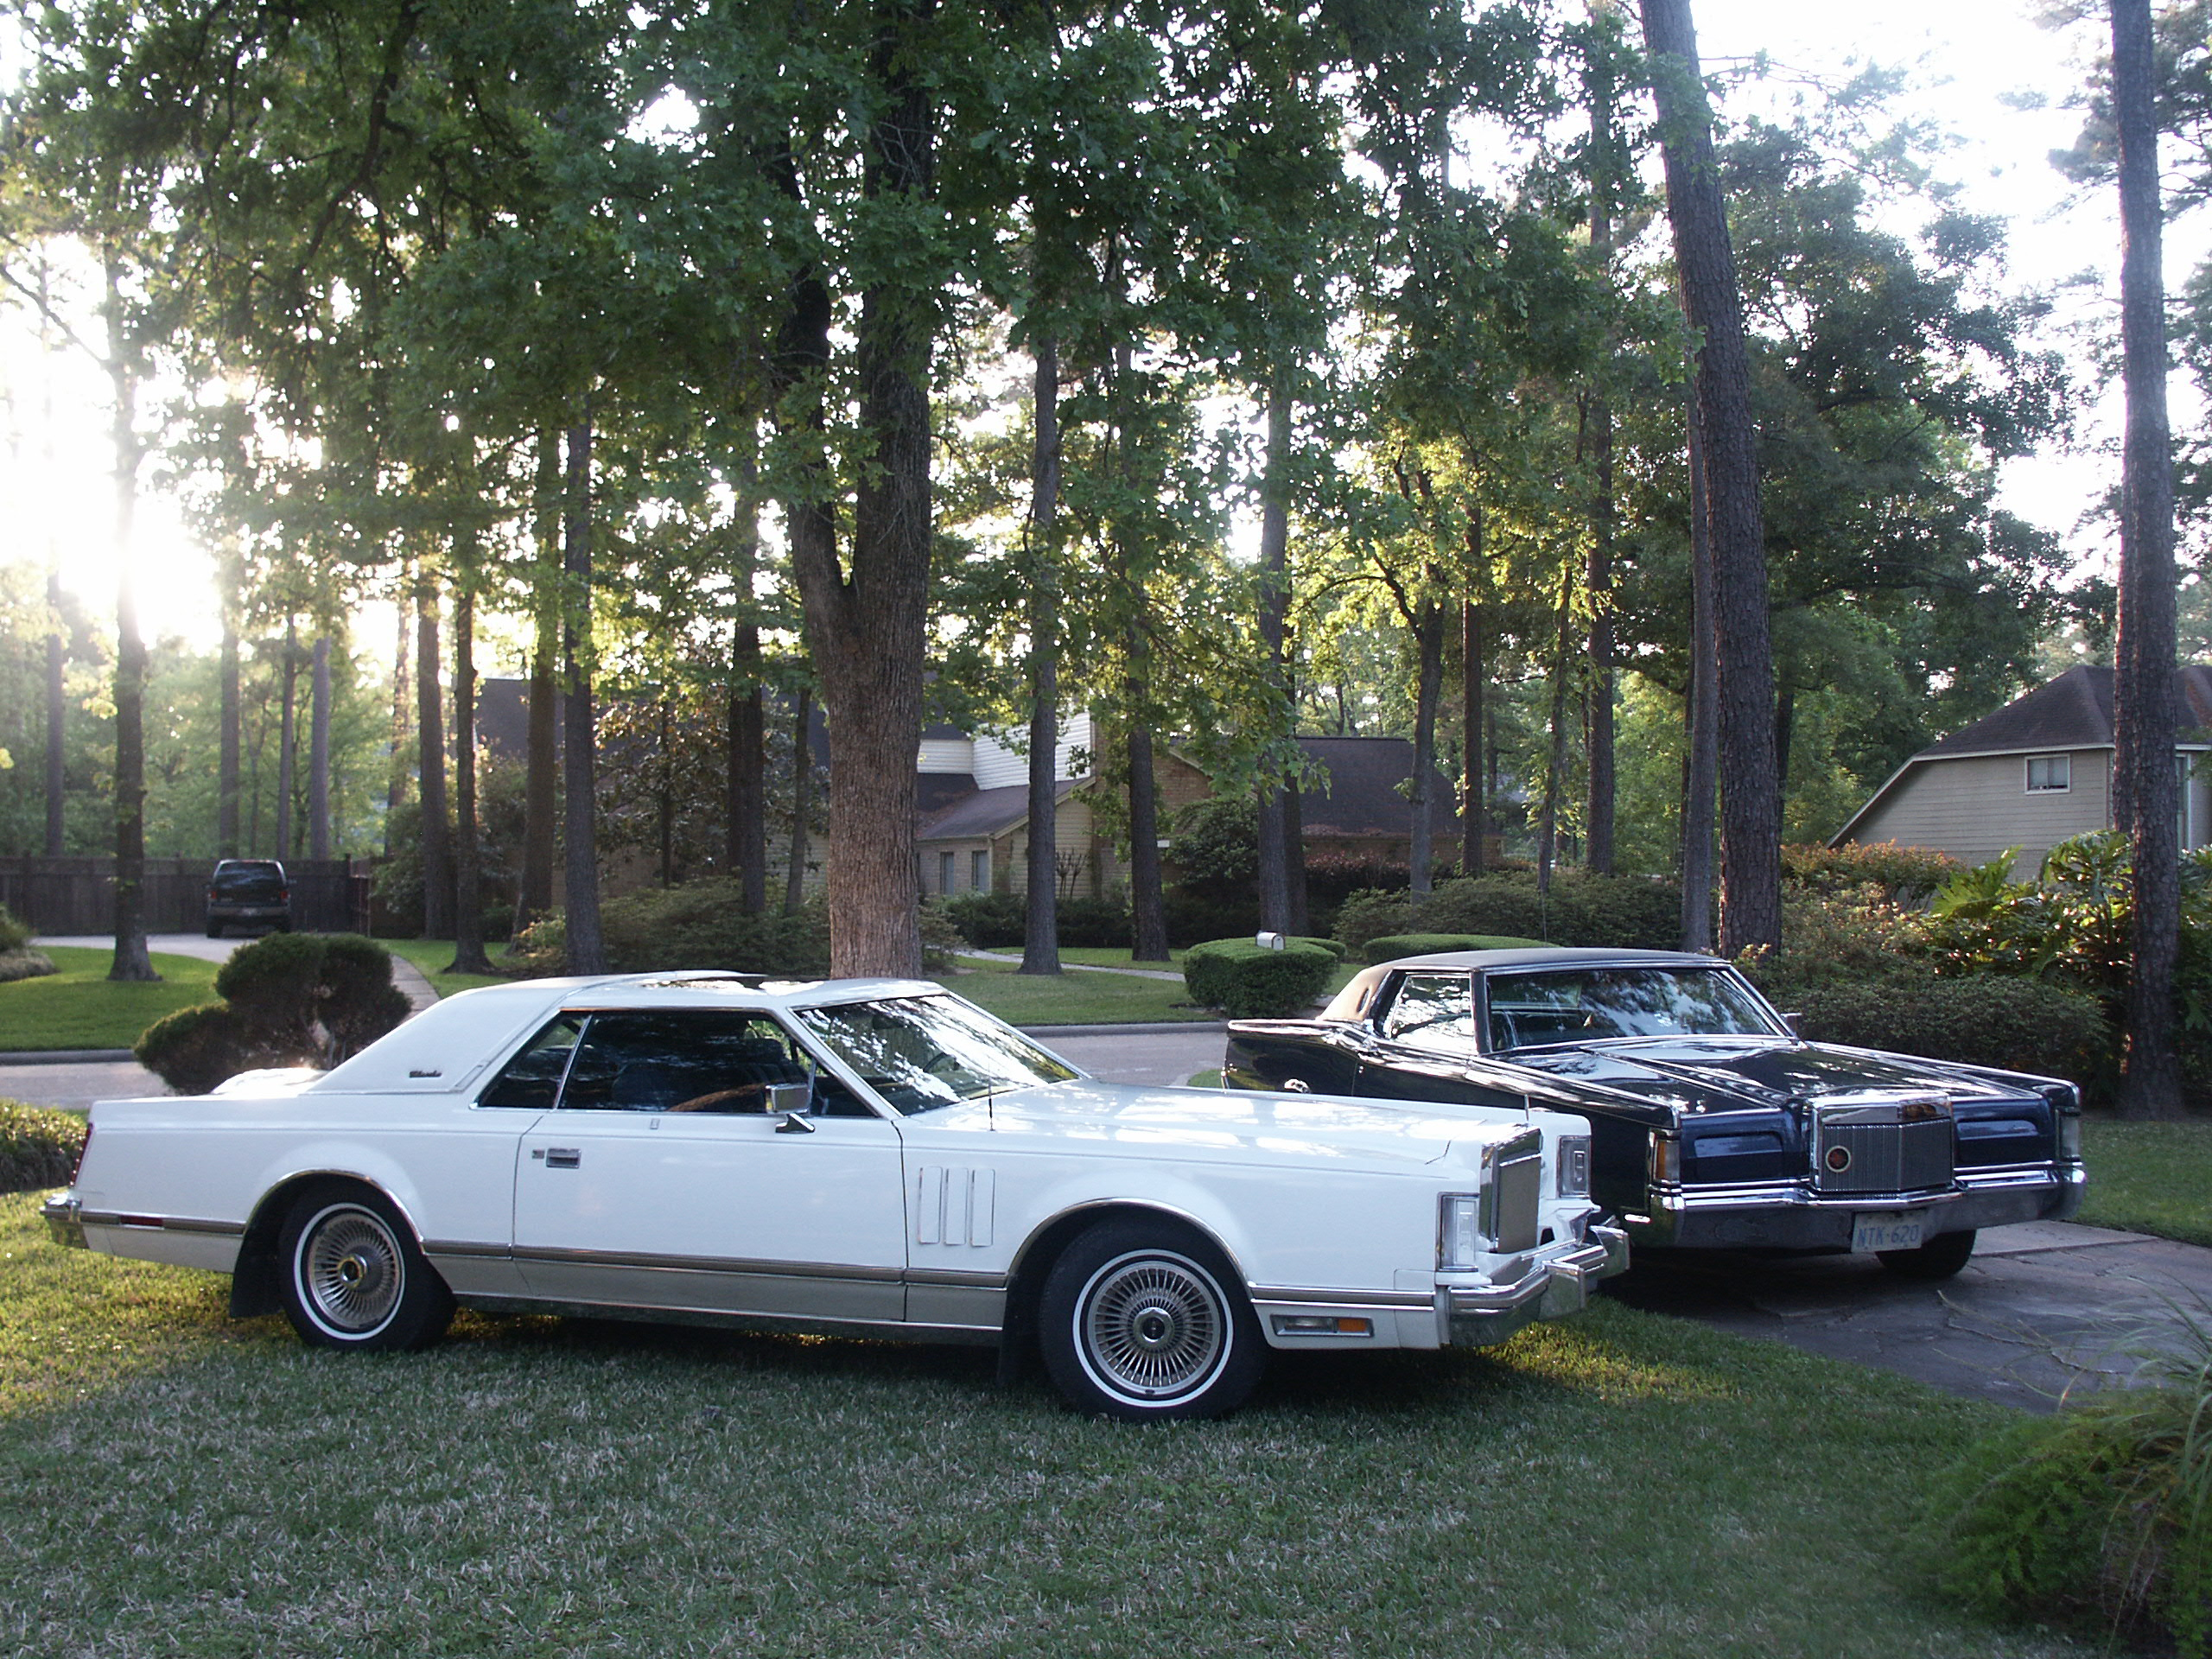 517489 Fascinating Lincoln Continental Used In Hit and Run Cars Trend